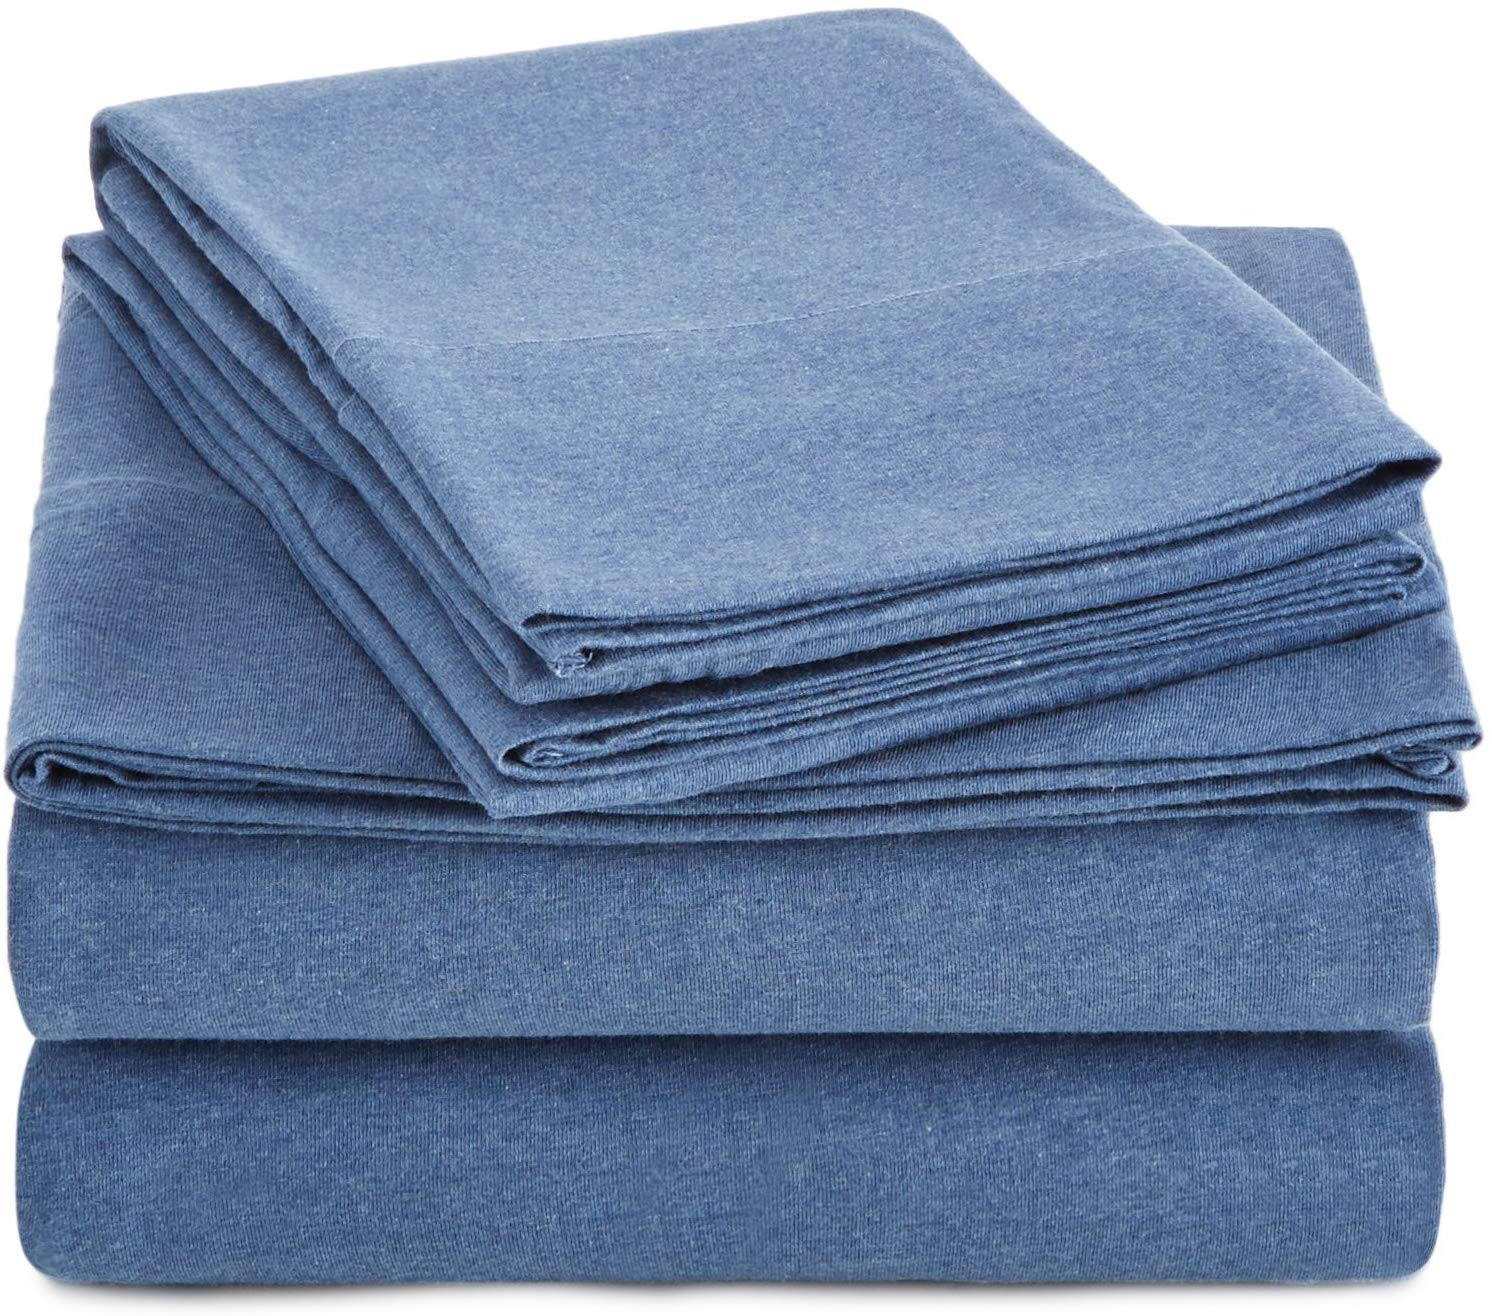 Blue jersey cotton bed sheets